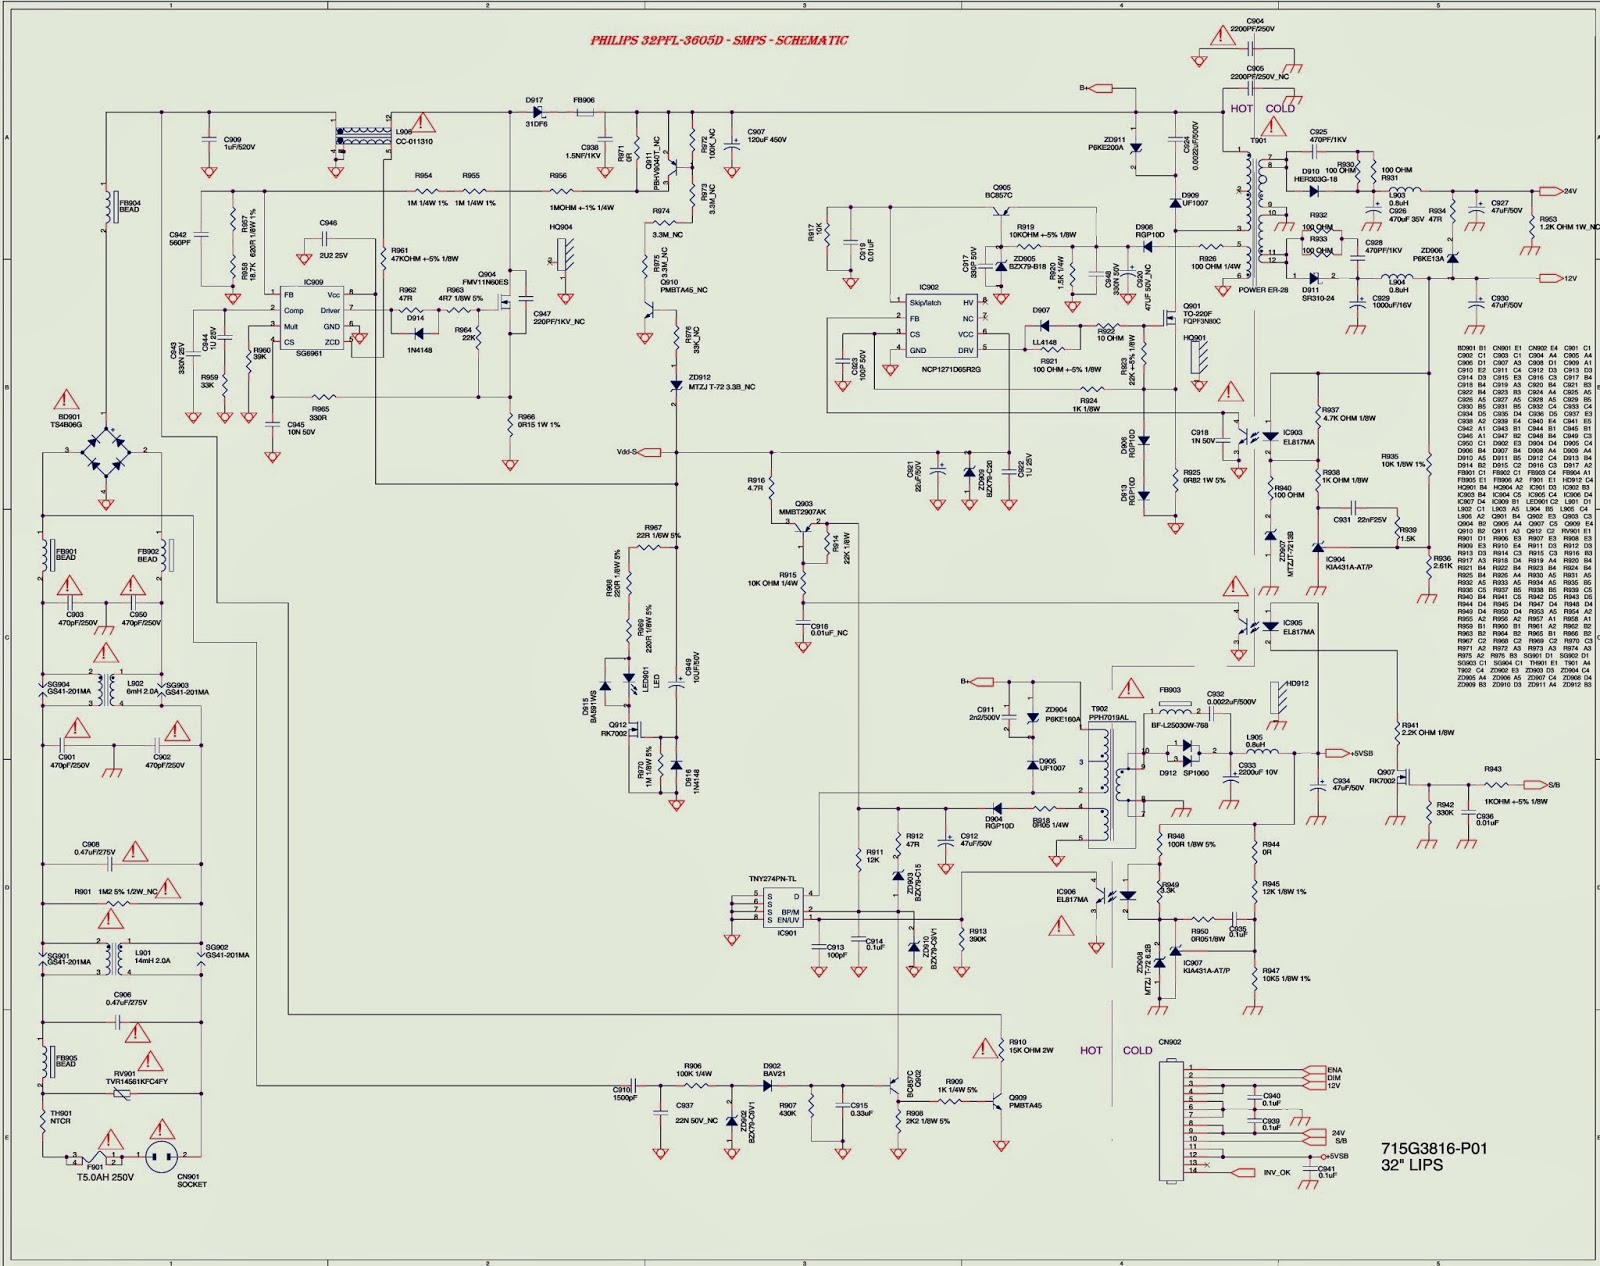 Wiring Diagram For 8184 Vw Cabby - Fav Wiring Diagram